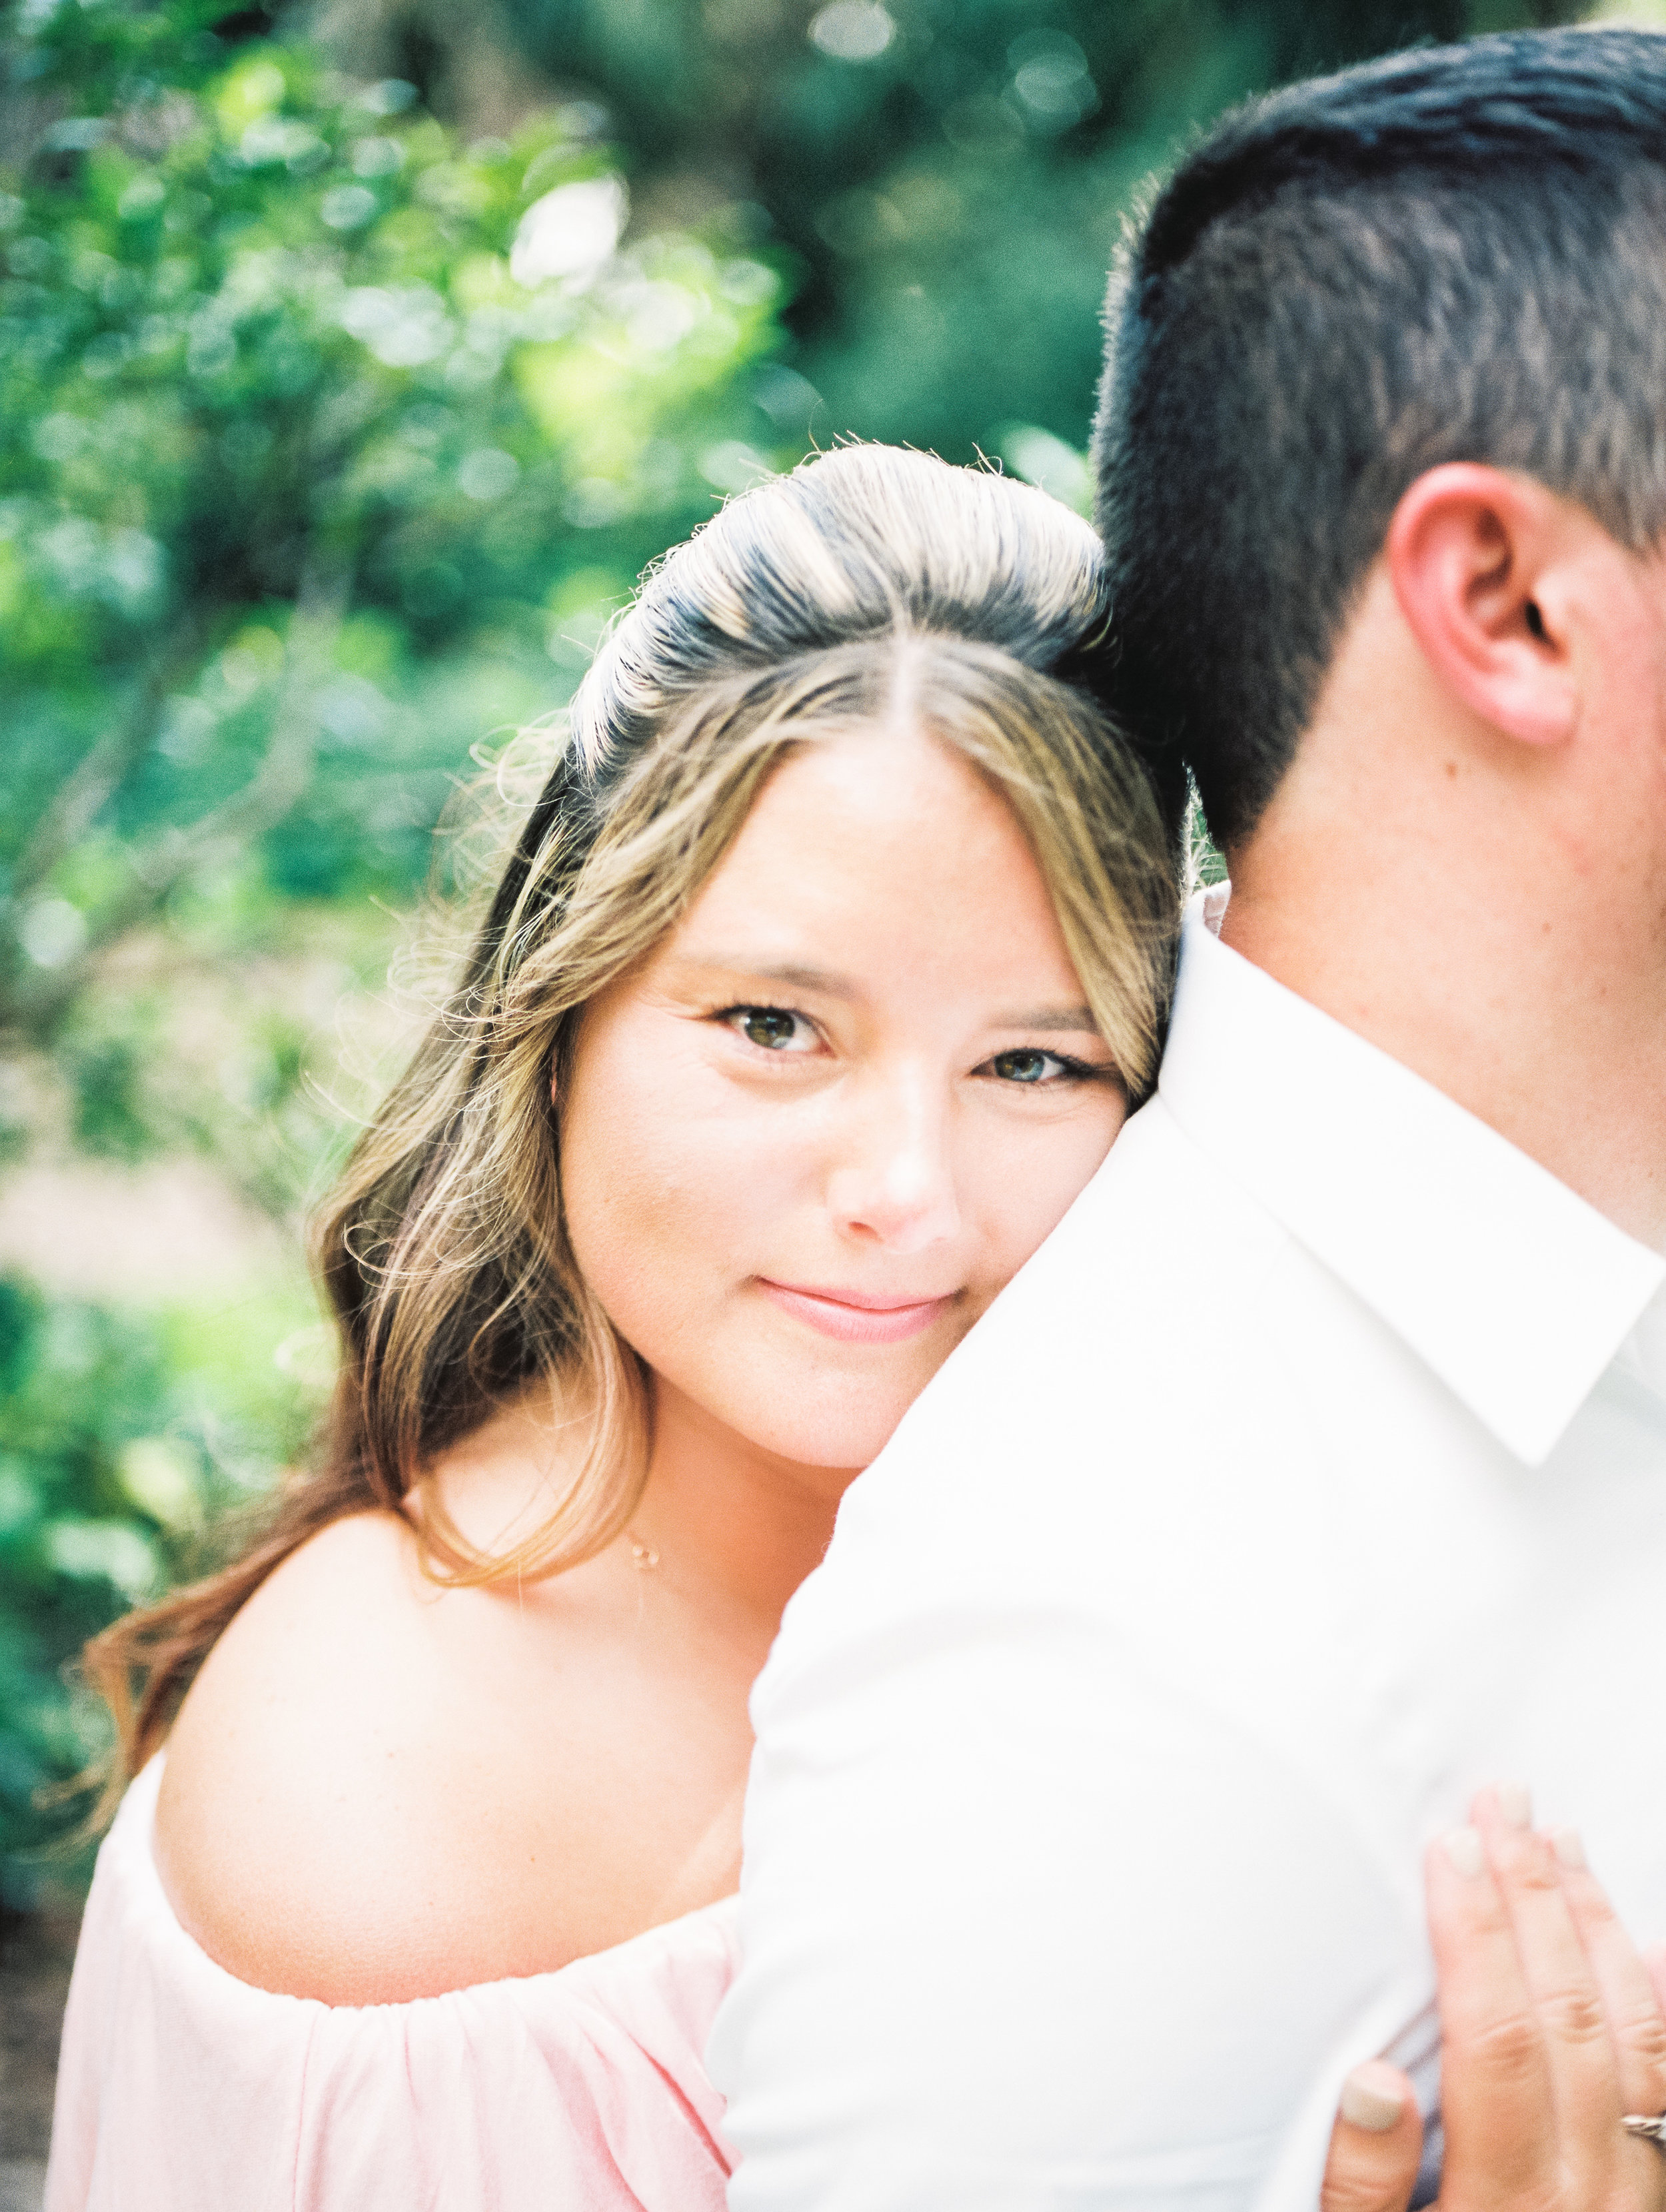 missy_stephen_film_bok_tower_engagement_2019_blog-20.jpg